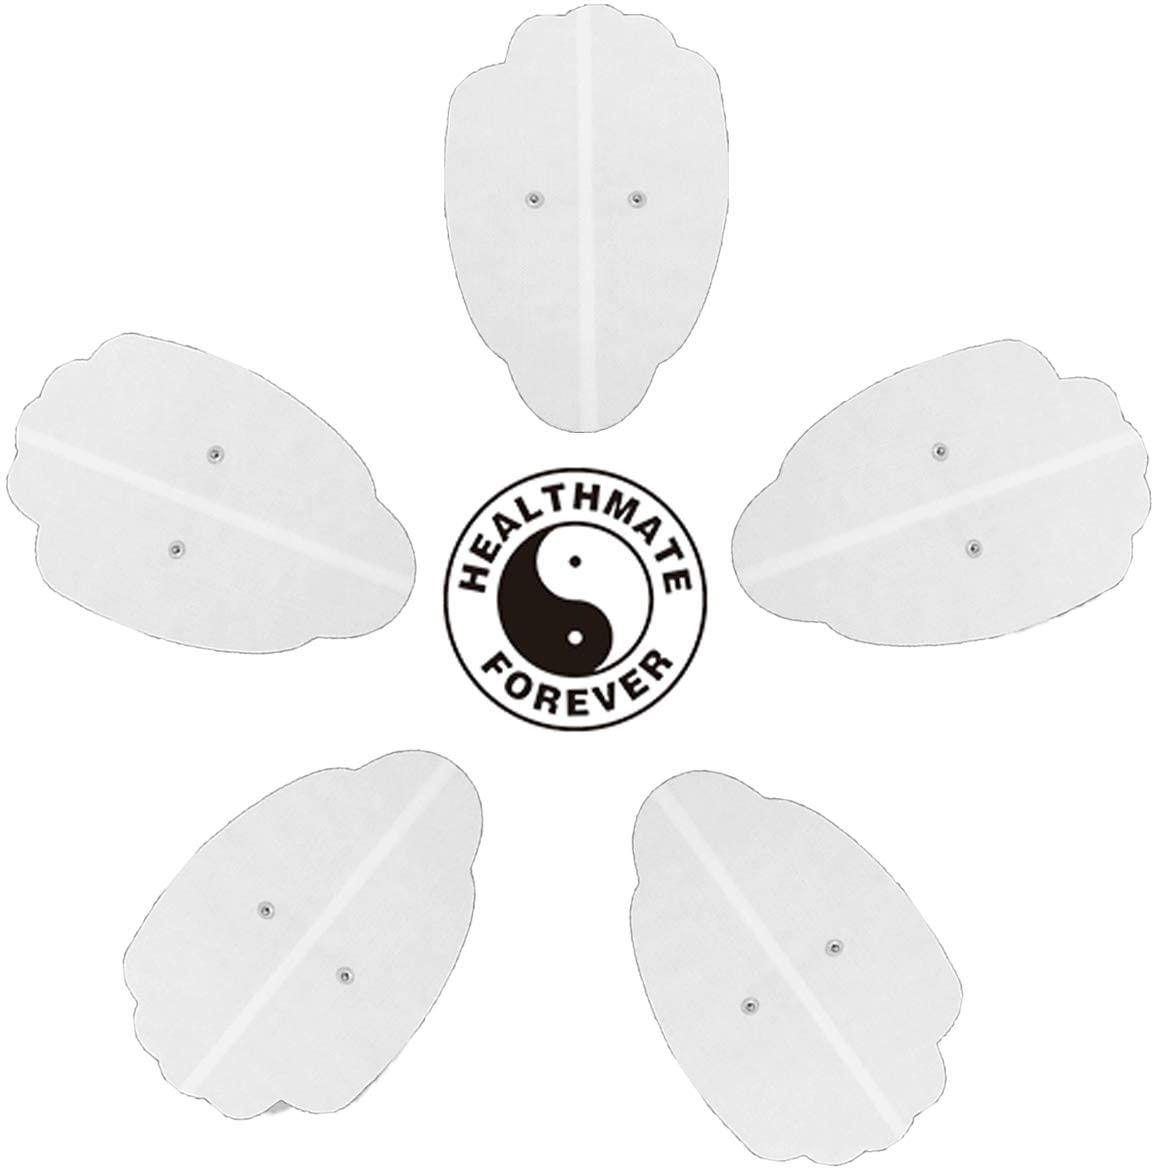 "5 Pcs White Snap-on XXL Hand-Shaped Electrode Patches Pads:  8.75""L x 5.5""W - HealthmateForever"